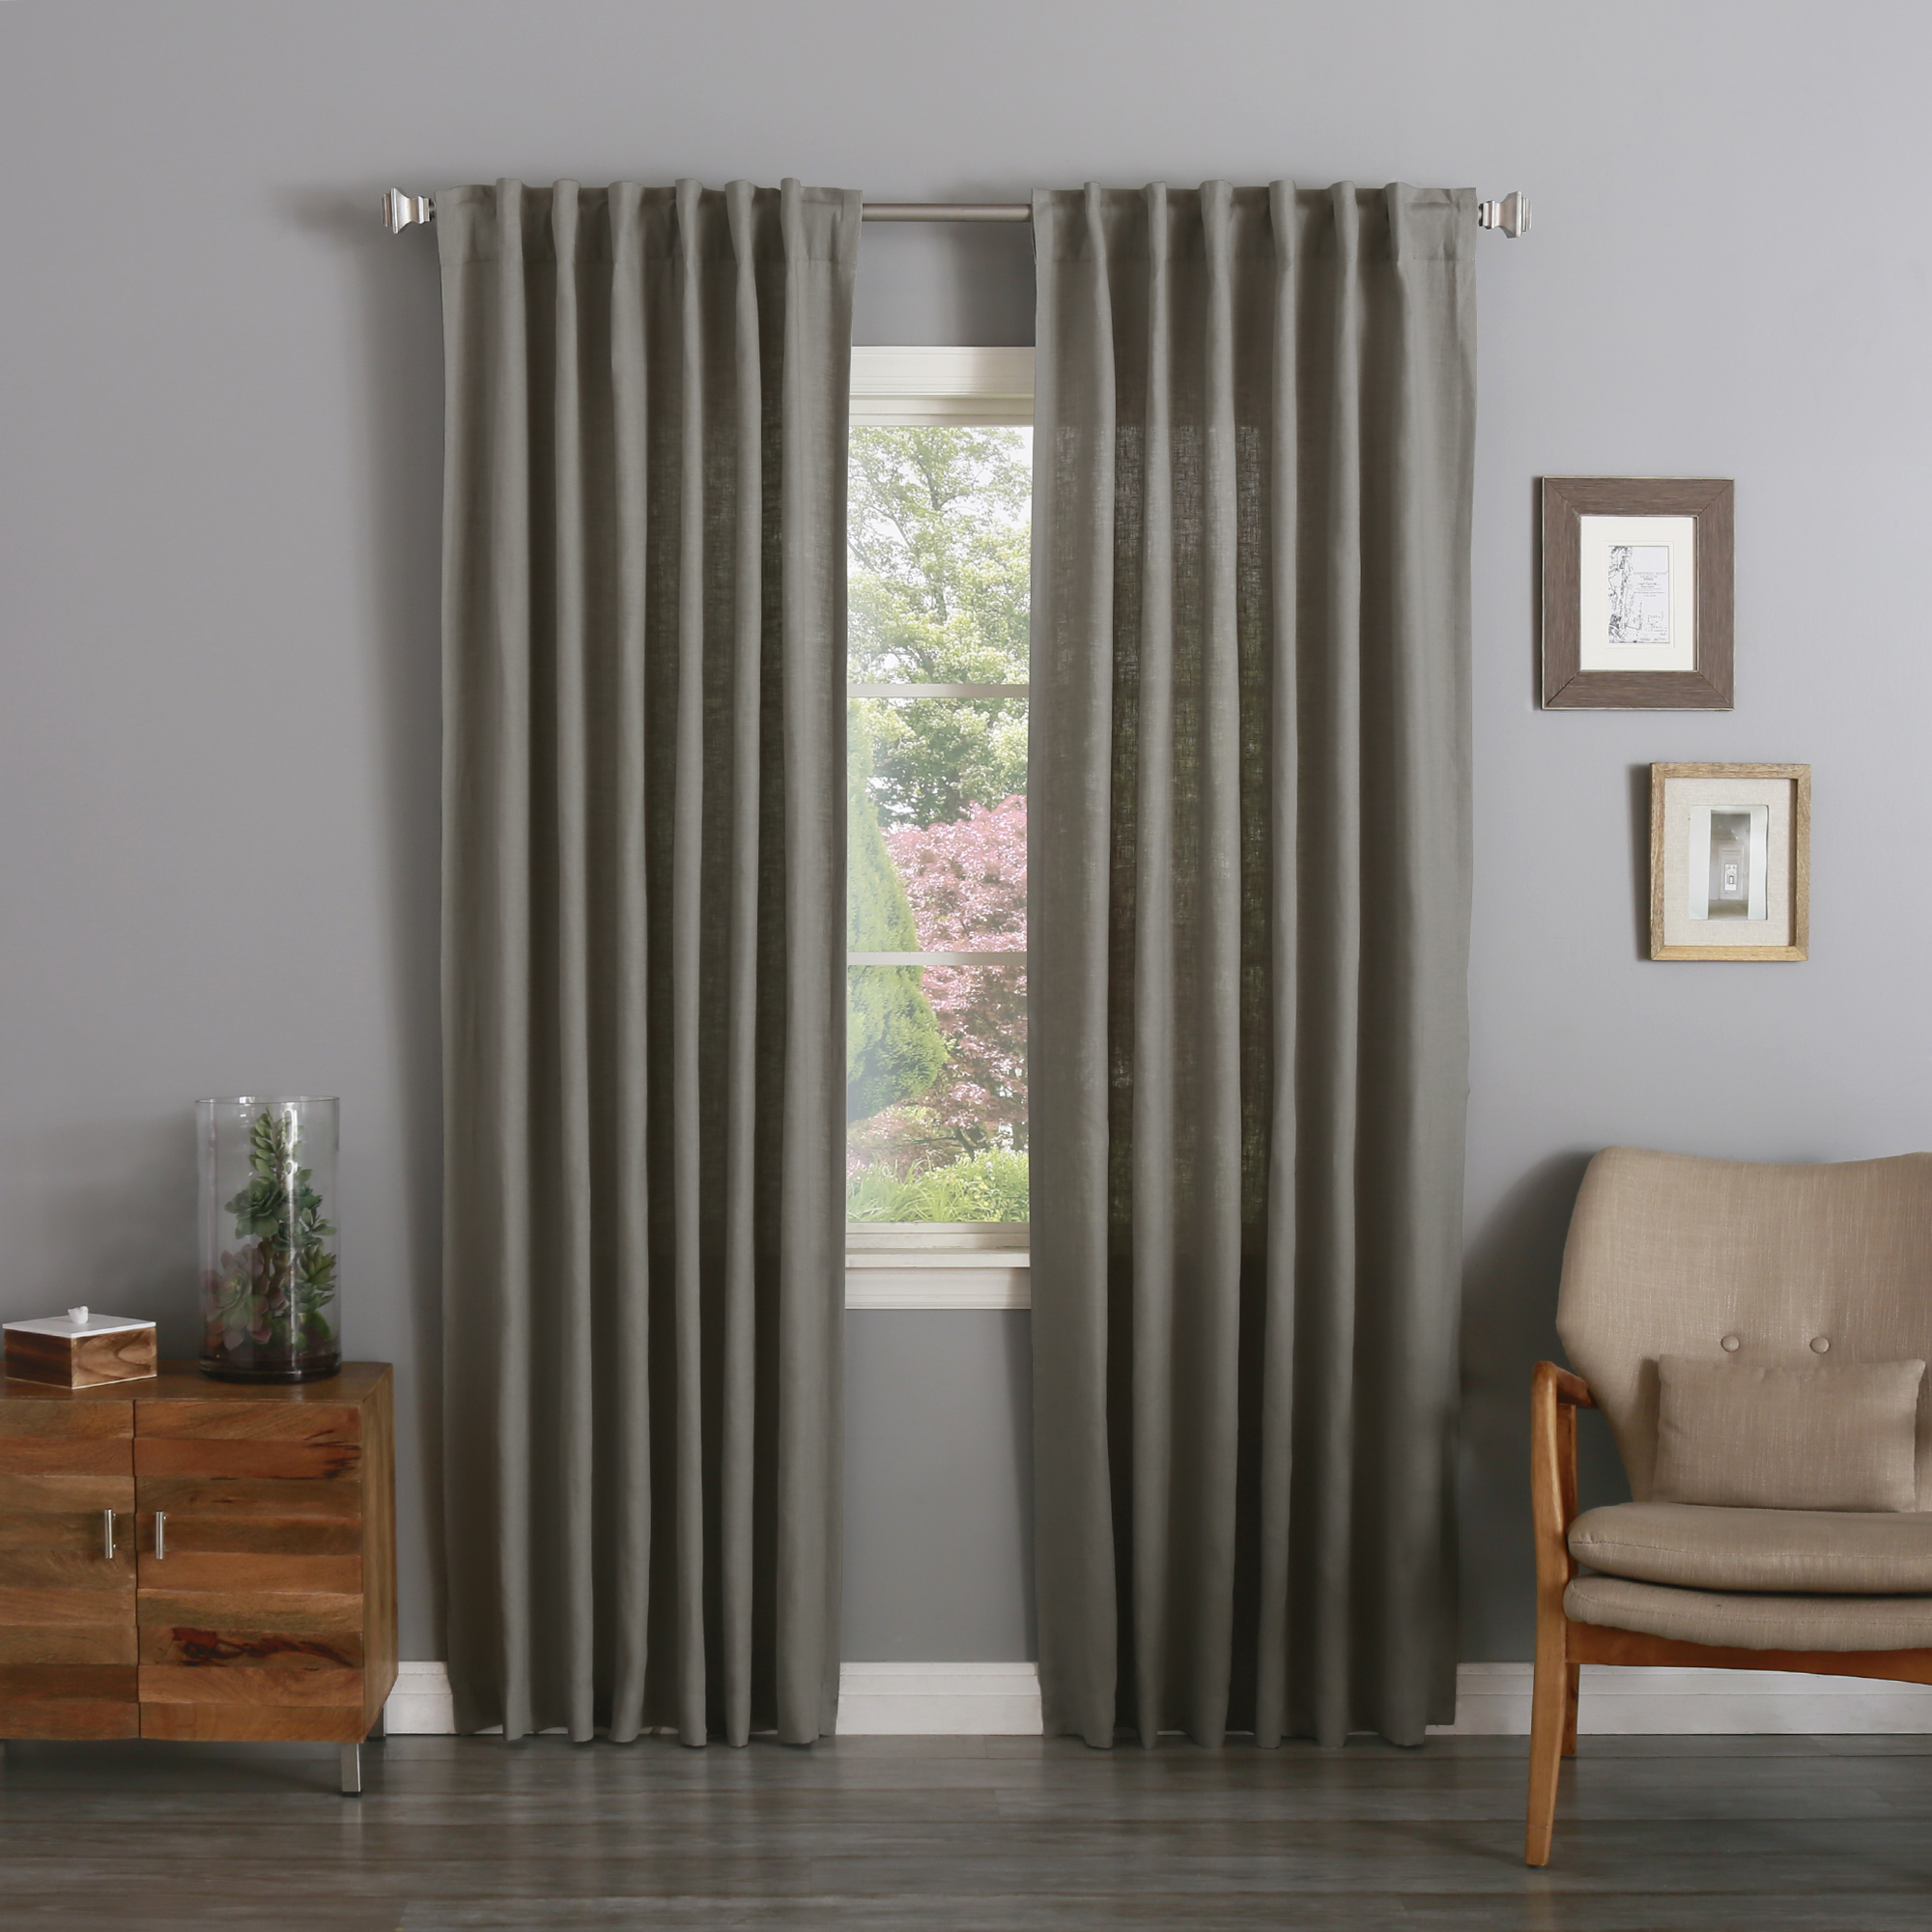 Quality Home Color Textured Linen Back Tab/ Rod Pocket Curtains